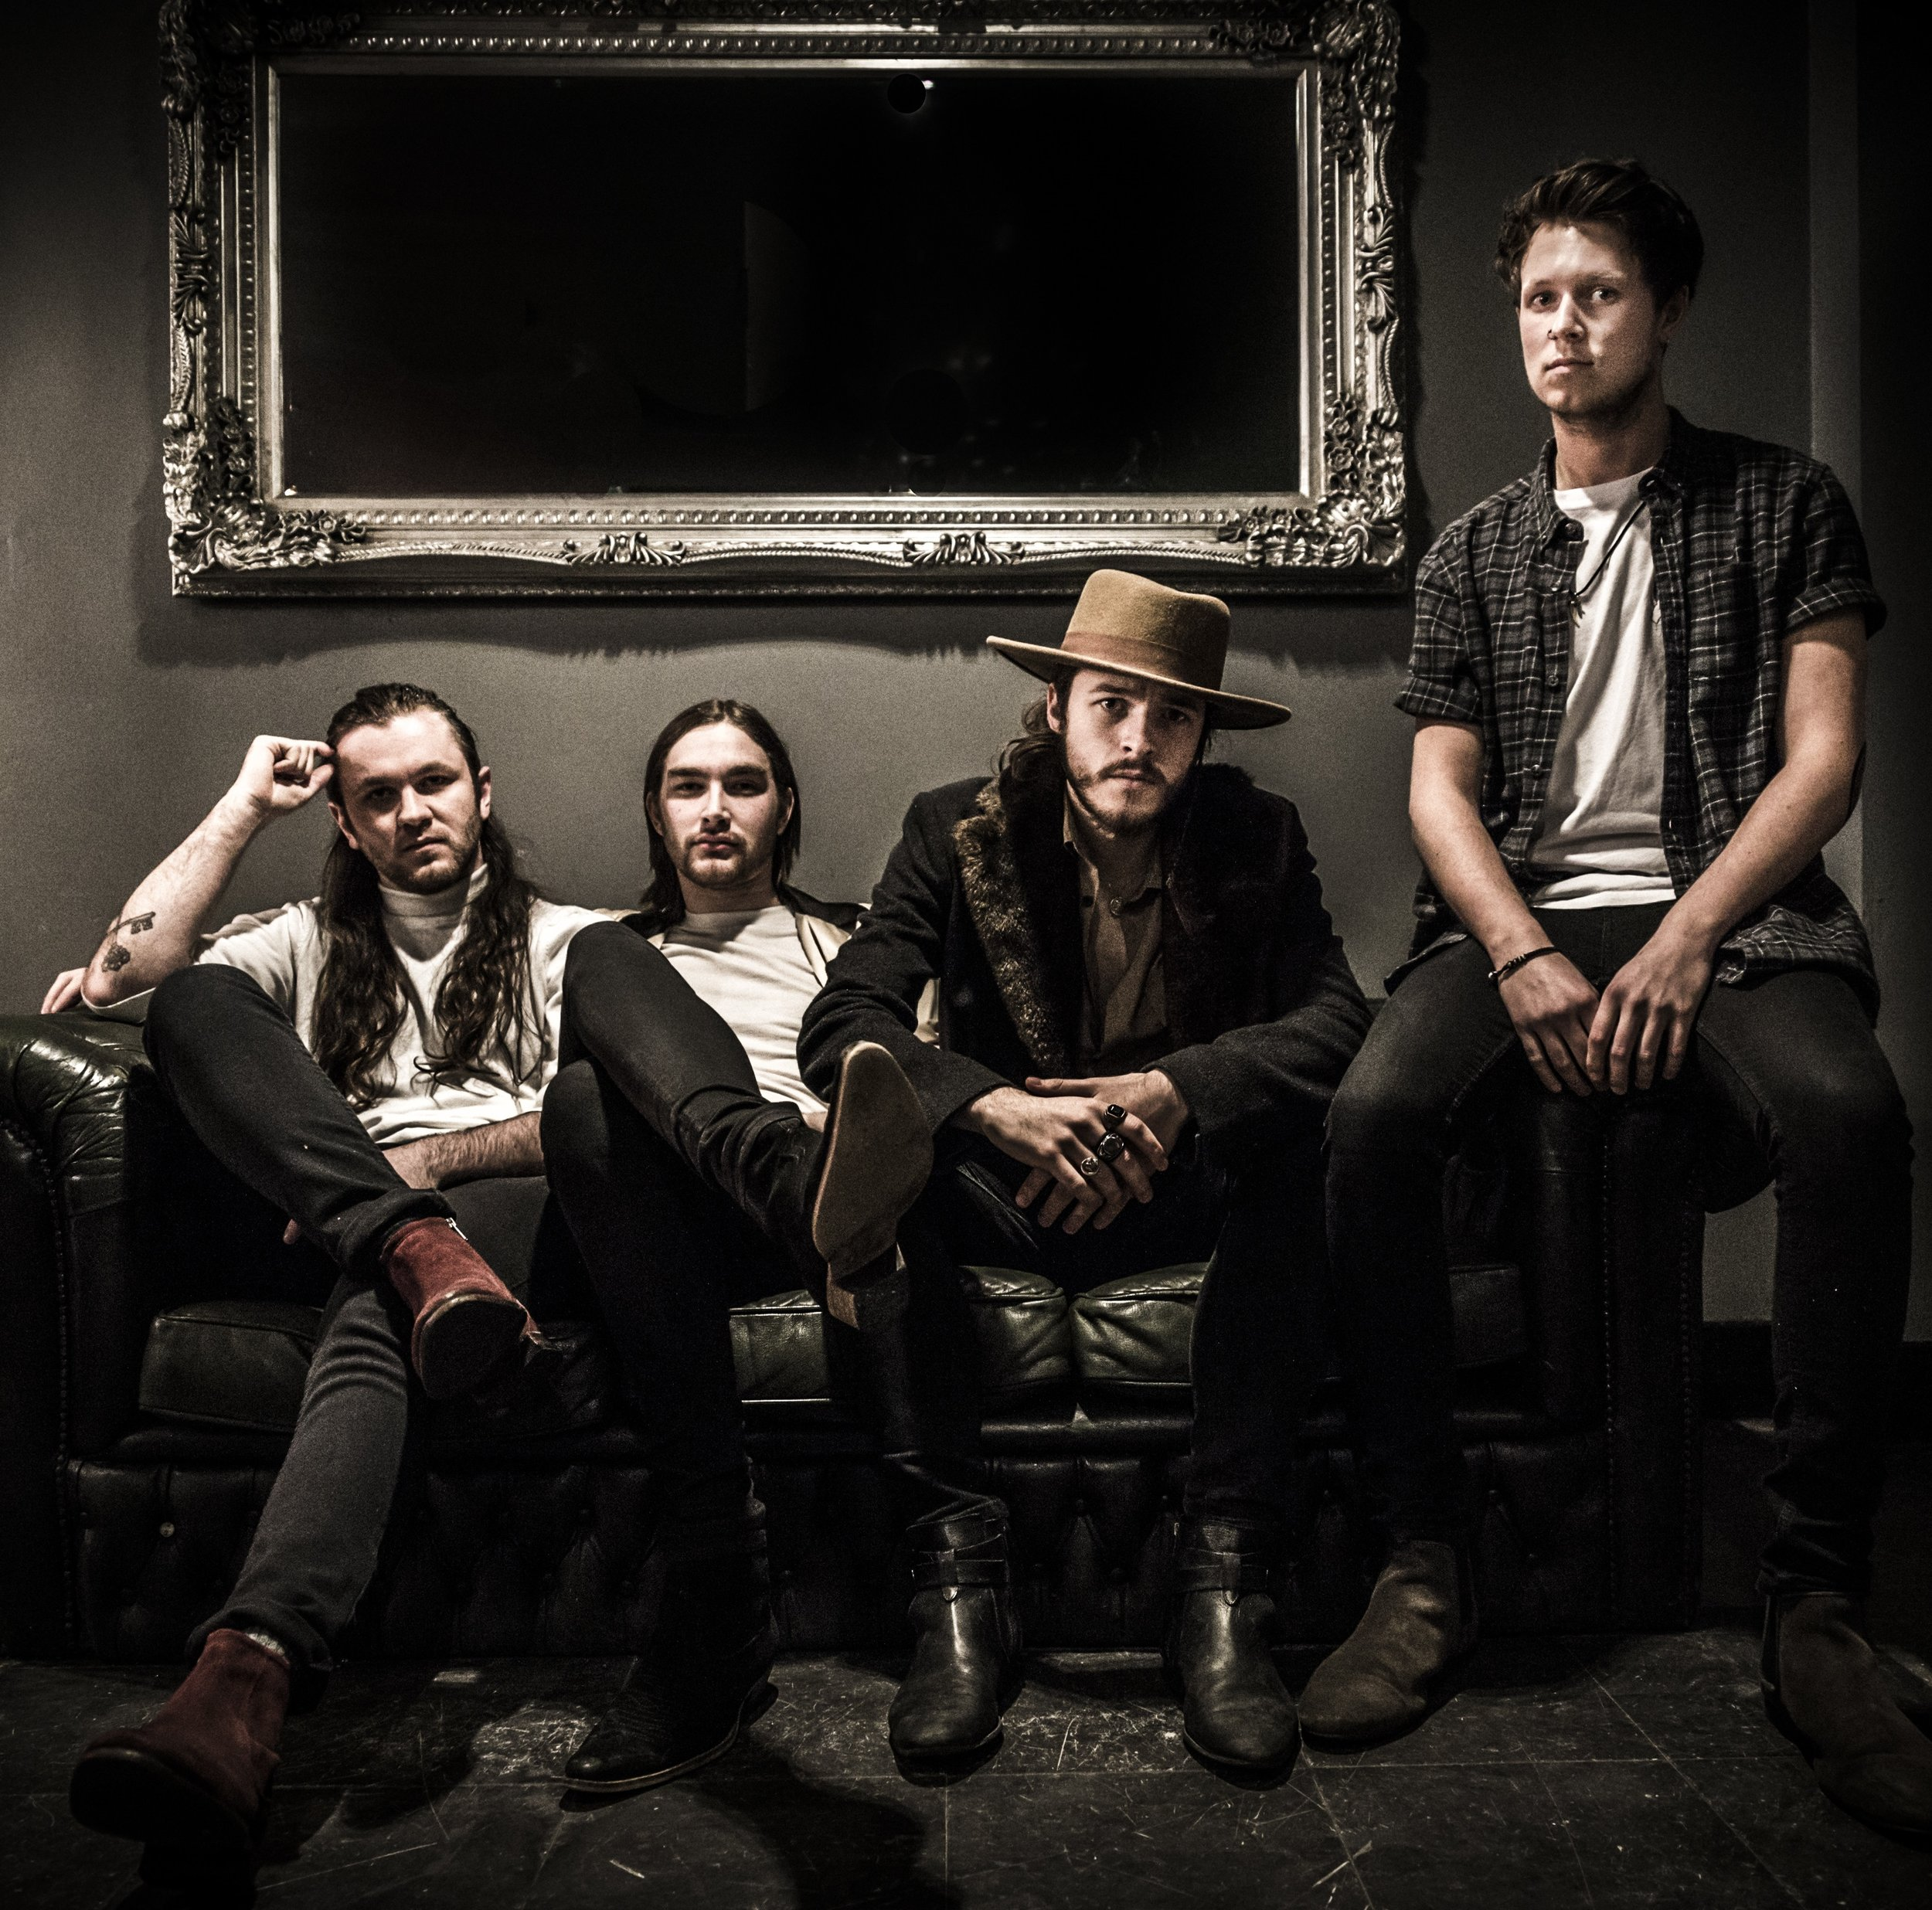 ARTIST/ TREMMORS - Bringing the combined sound of The Black Keys, Tom Waits and Them Crooked Vultures to northern England, Tremmors then throw in some desert rock edge and it's good to go.Think dark menacing tones combined with powerful vocals and stylish songwriting.